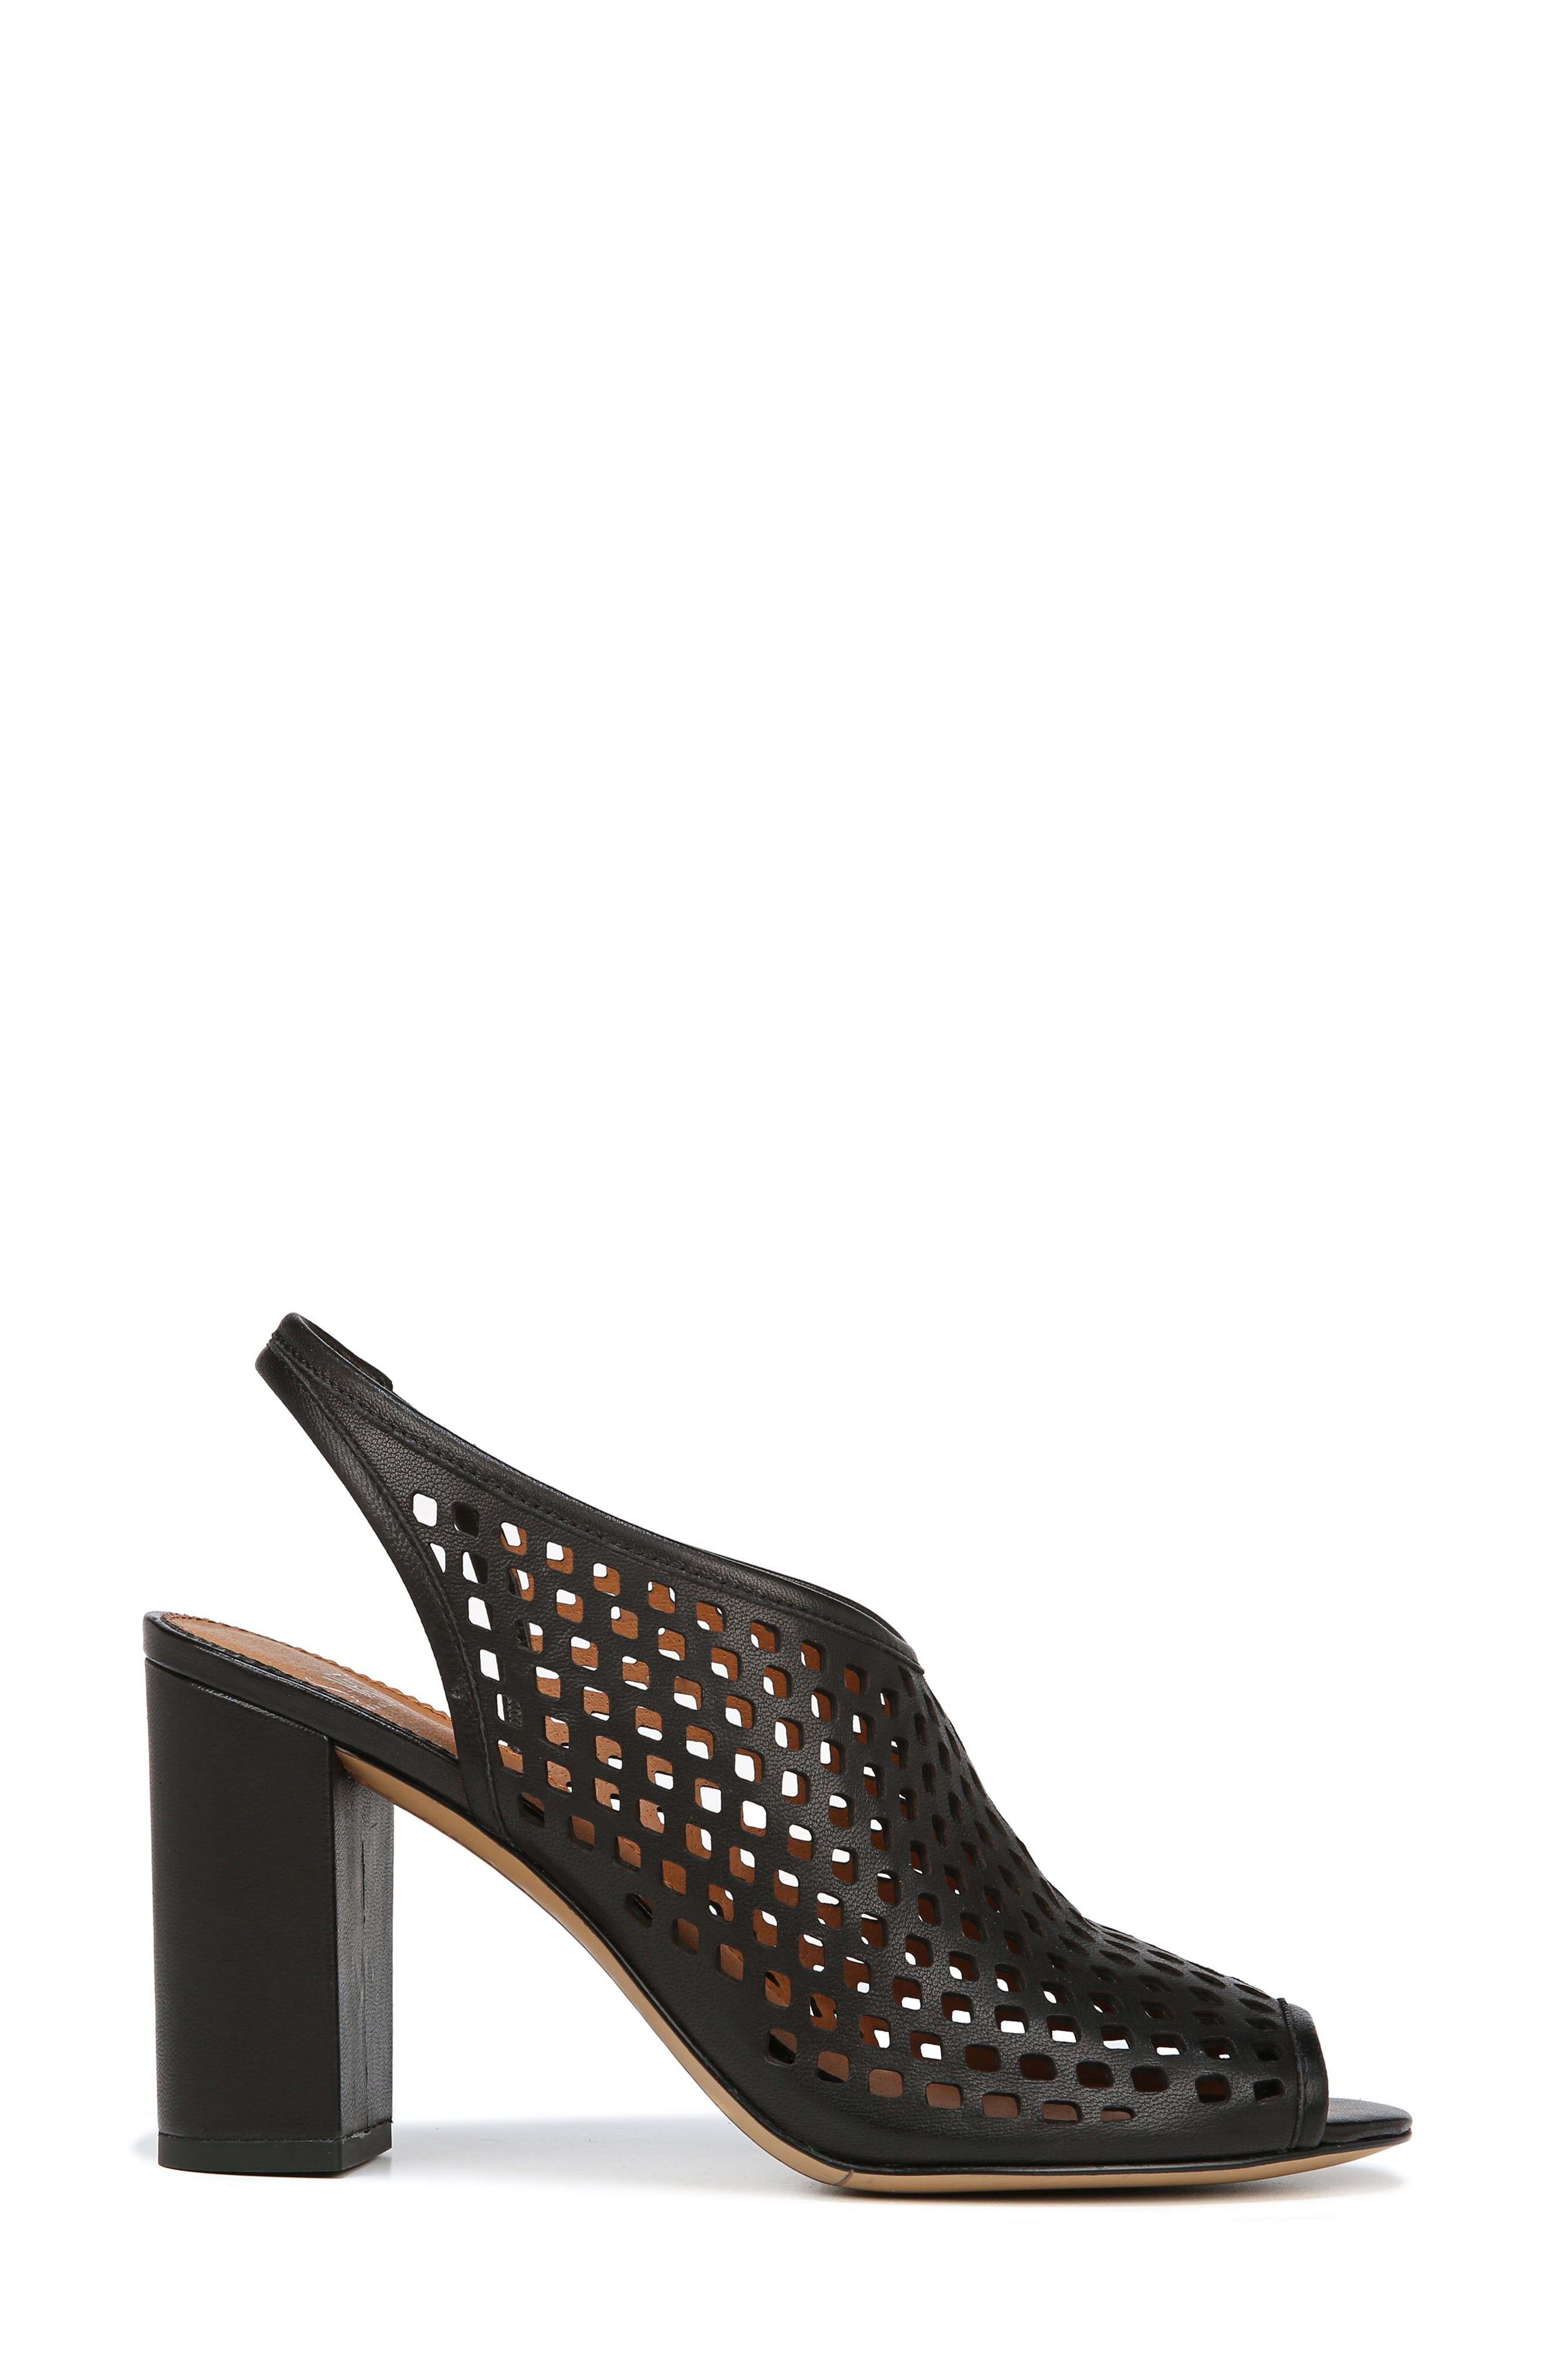 Osbourne Perforated Slingback Sandal,                             Alternate thumbnail 3, color,                             BLACK LEATHER